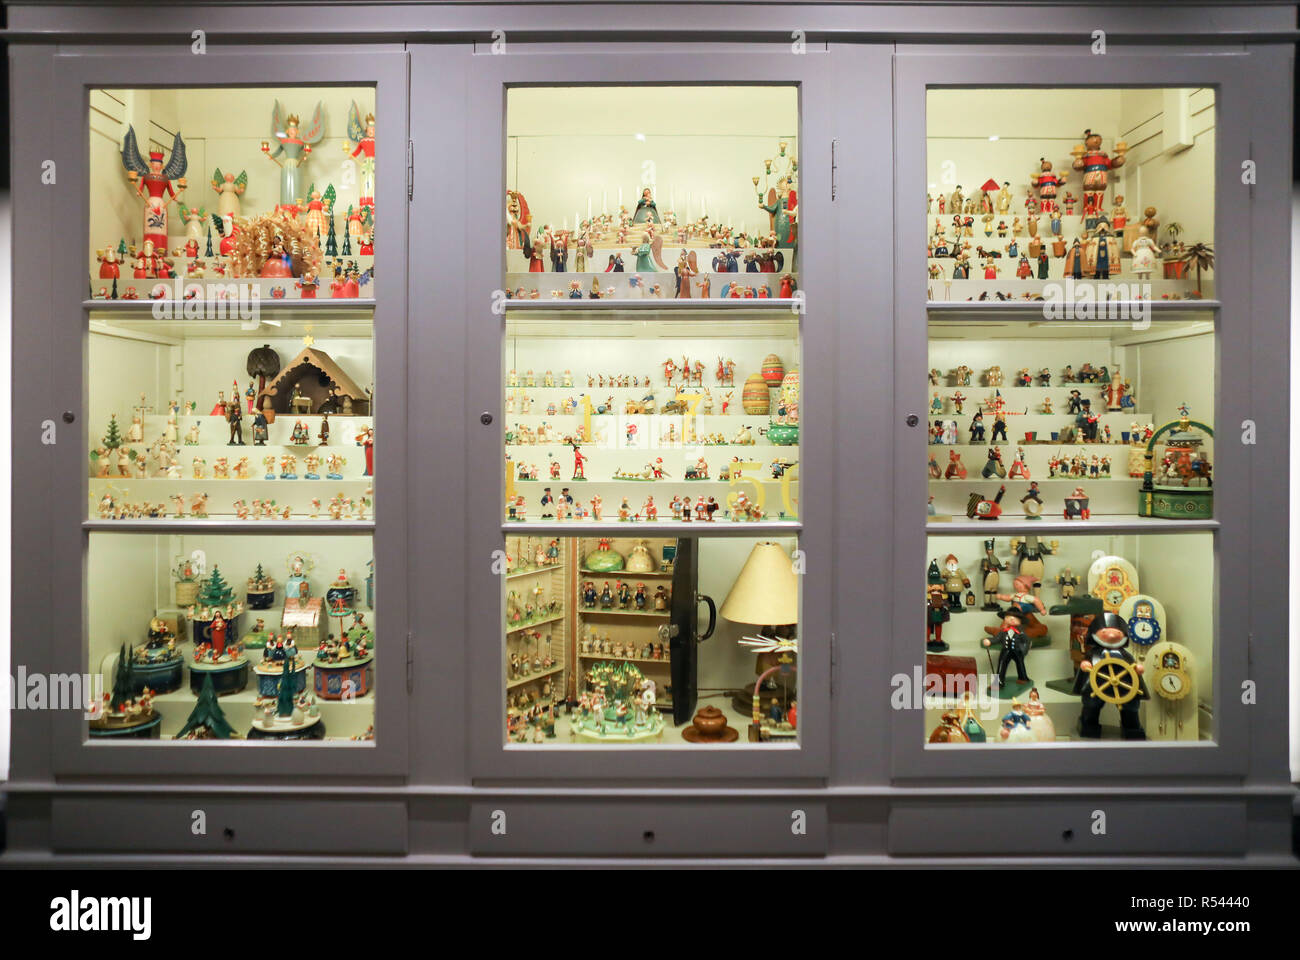 08 November 2018, Saxony, Grünhainichen: The Wendt&Kühn sample cabinet stands in the manufactory's world of experience. Carving and the production of wooden toys are still an important branch of the economy in the Erzgebirge. The spectrum ranges from the classic two-man family business to large medium-sized companies. With almost 200 employees, Wendt&Kühn is one of the larger companies in the industry. Photo: Jan Woitas/dpa-Zentralbild/dpa - Stock Image